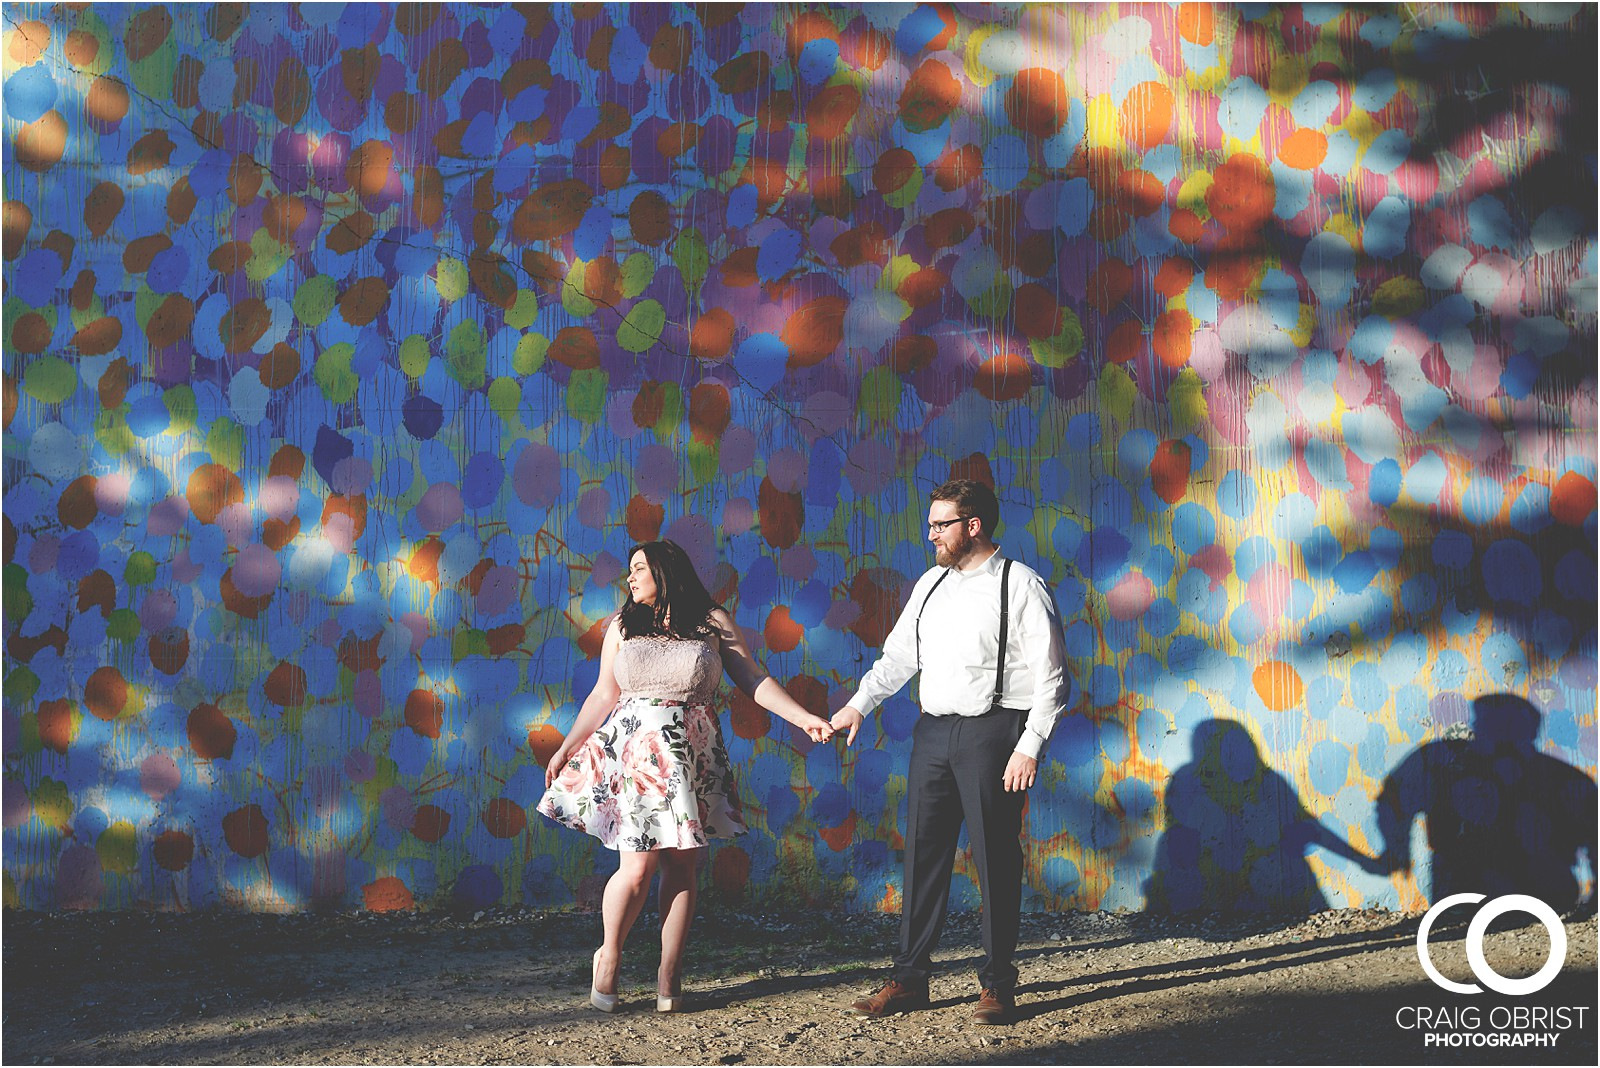 Ponce city markey Atlanta Beltline Piedmont Park engagement portraits_0012.jpg